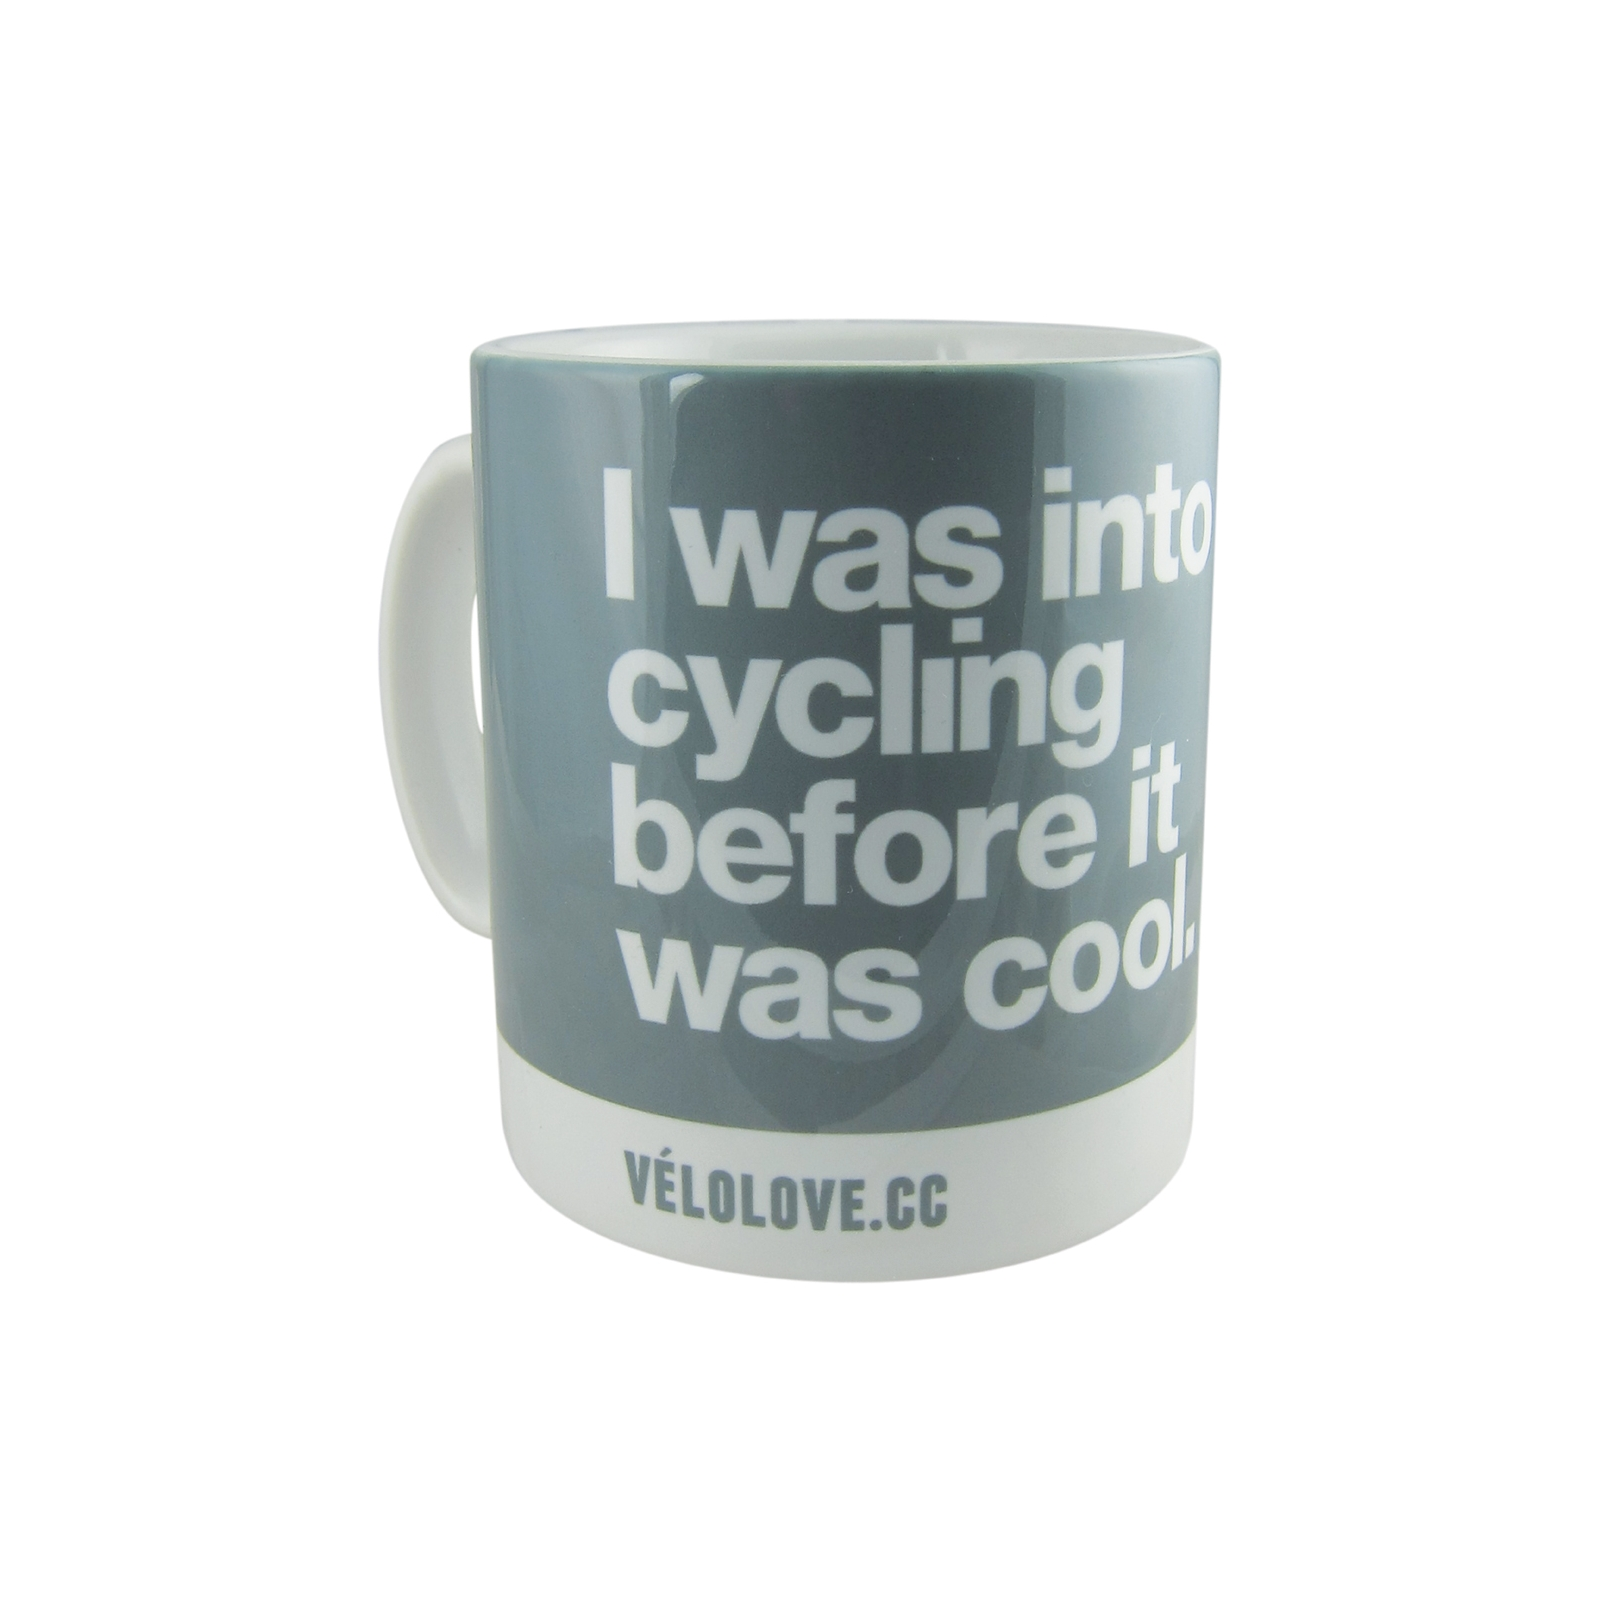 Velolove I was into cycling before it was cool Mug | Multimedier > Tilbehør